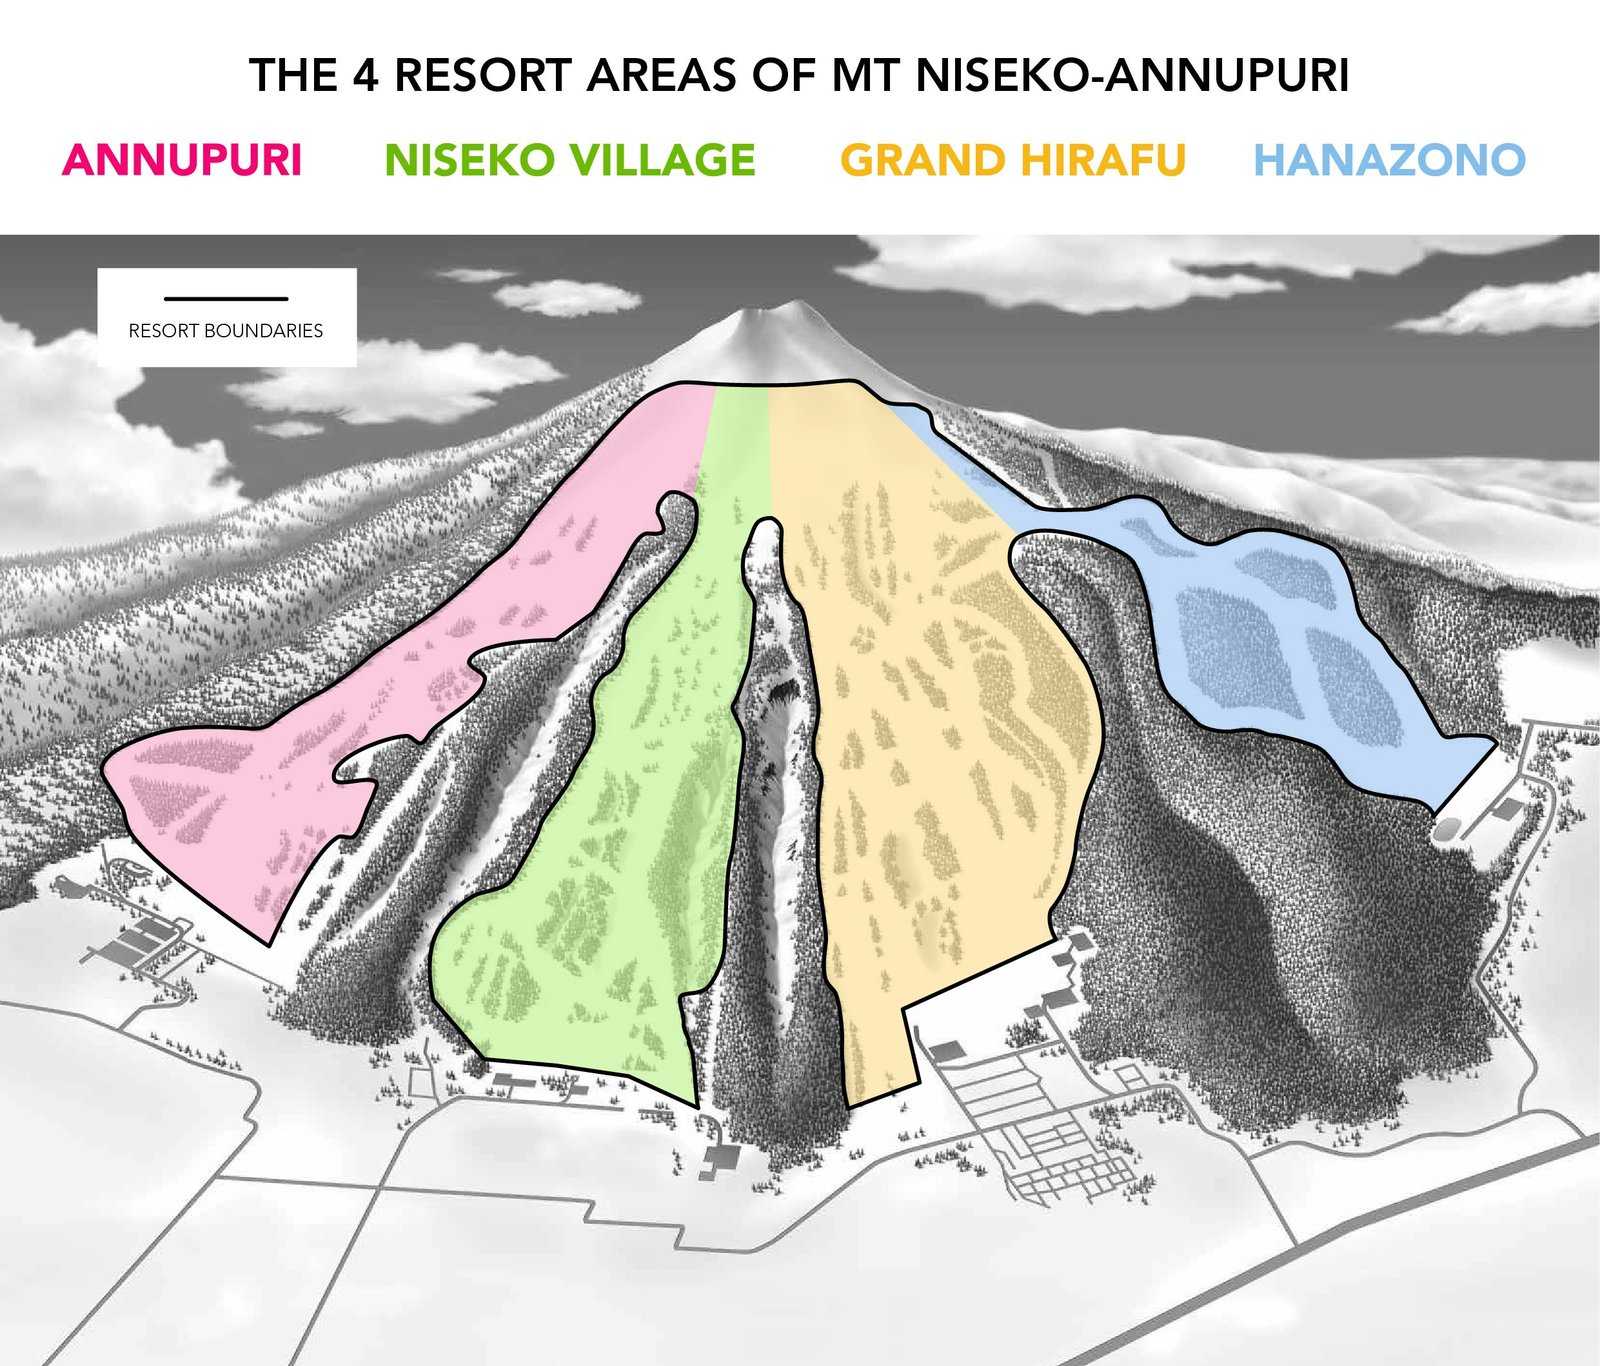 the 4 resorts of niseko on a map of mt niseko annupuri.